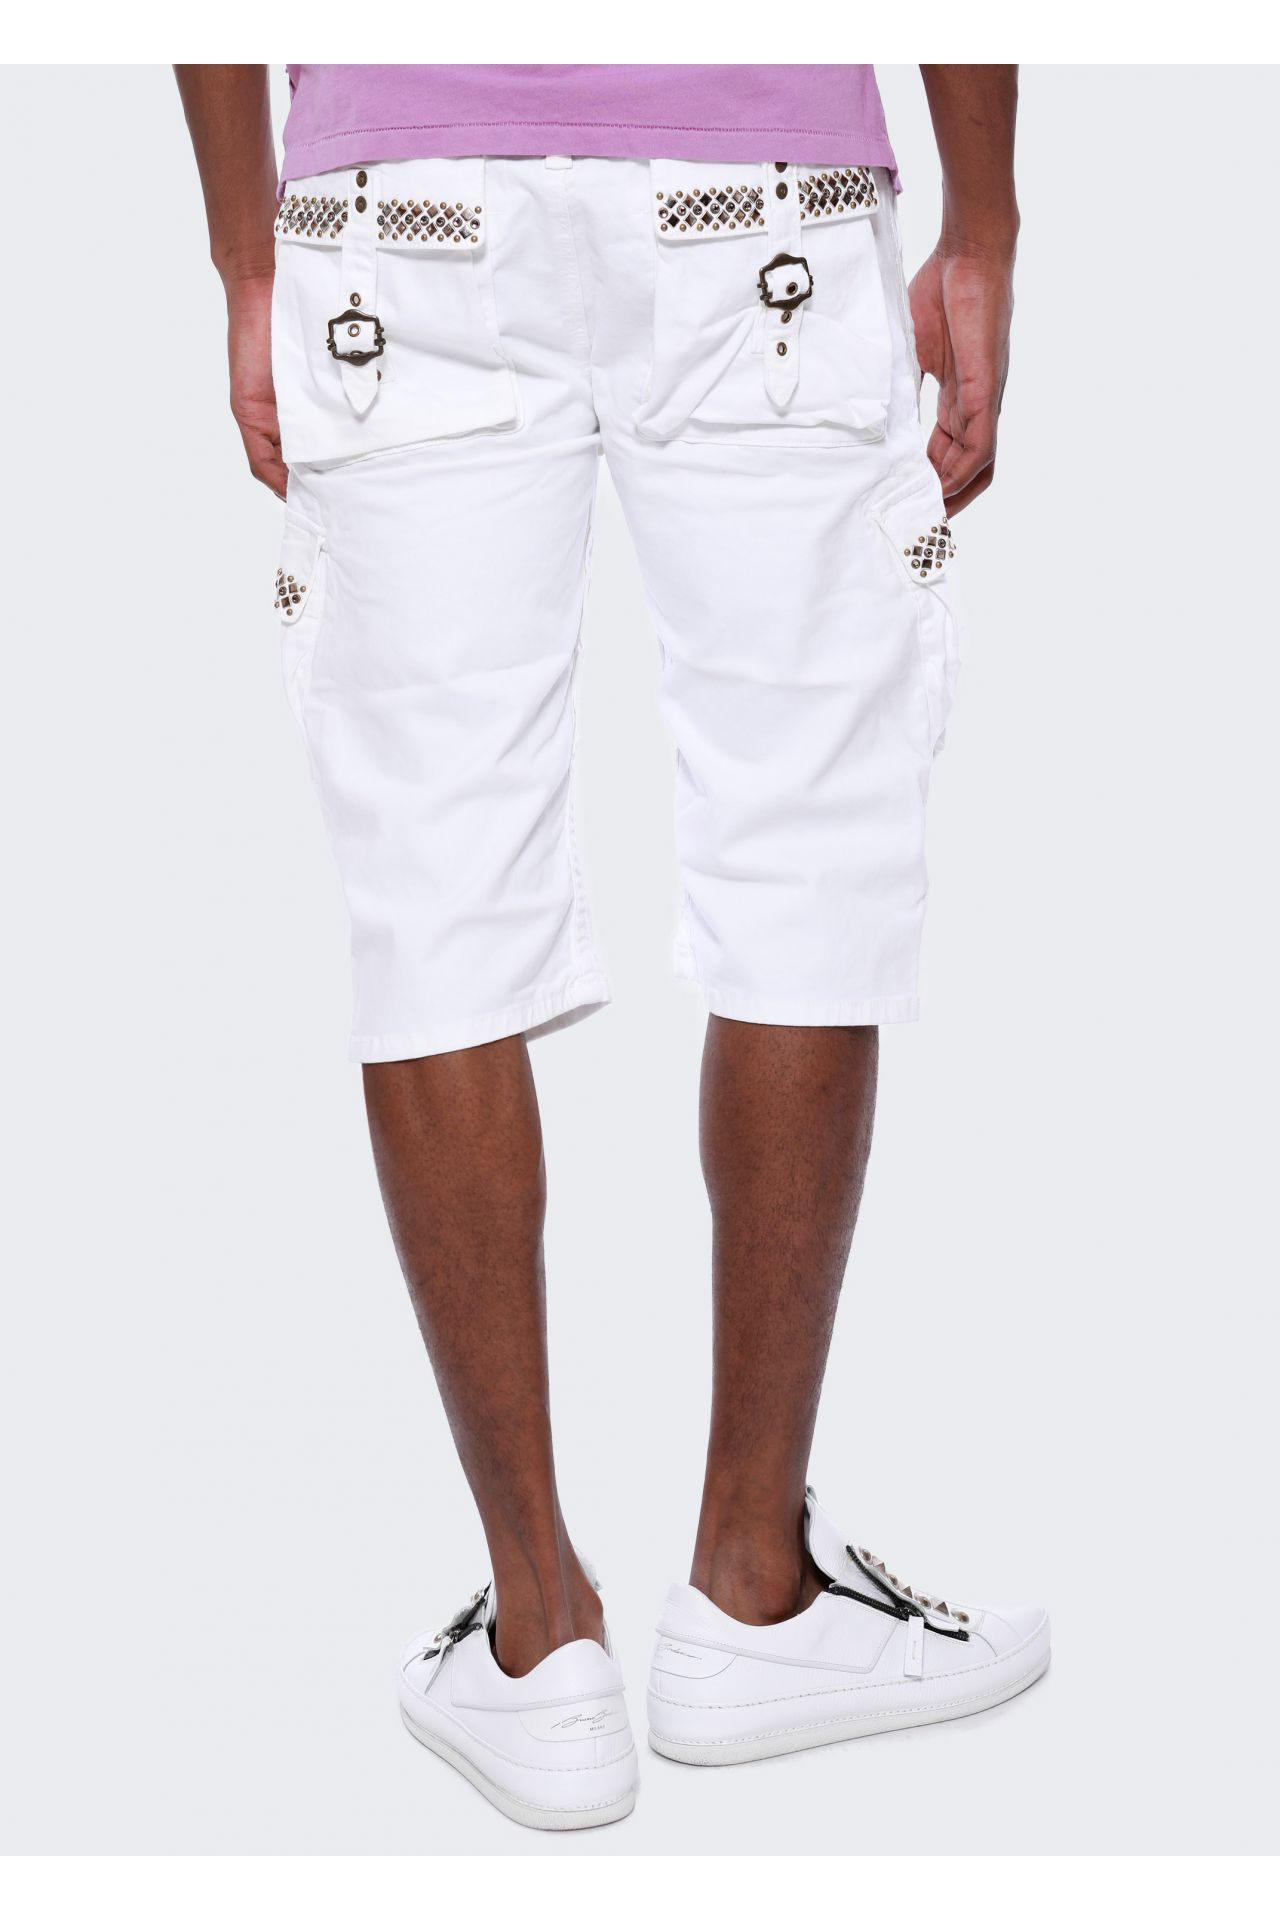 CARGO SHORTS IN WHITE WITH BLACK DIAMOND SW